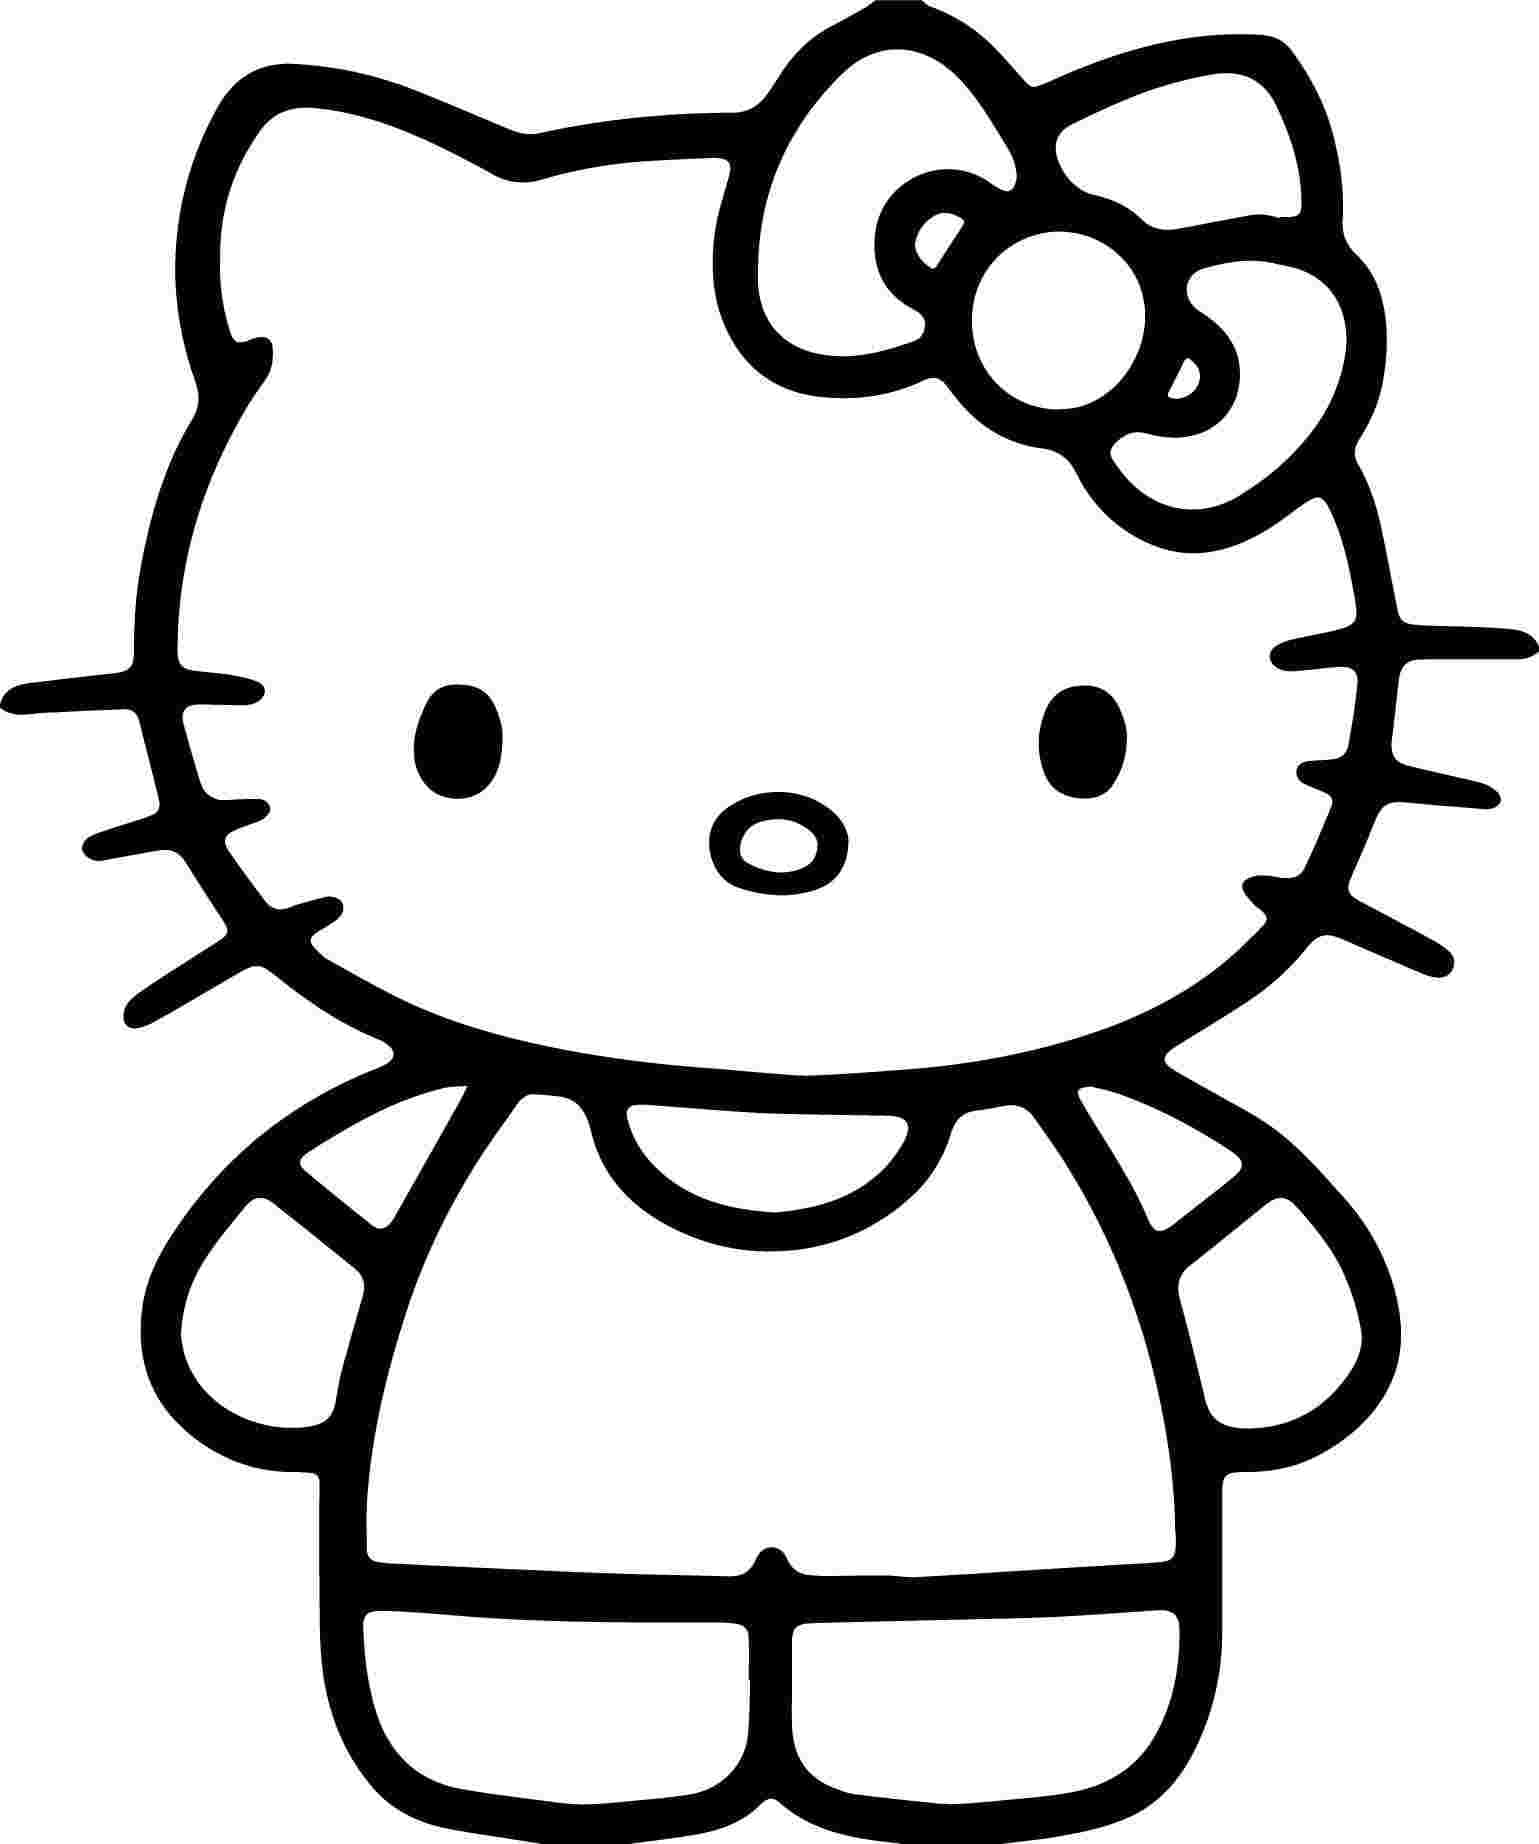 coloring pages 2 year olds printable coloring pages 10 year olds free download on clipartmag pages olds year coloring printable 2